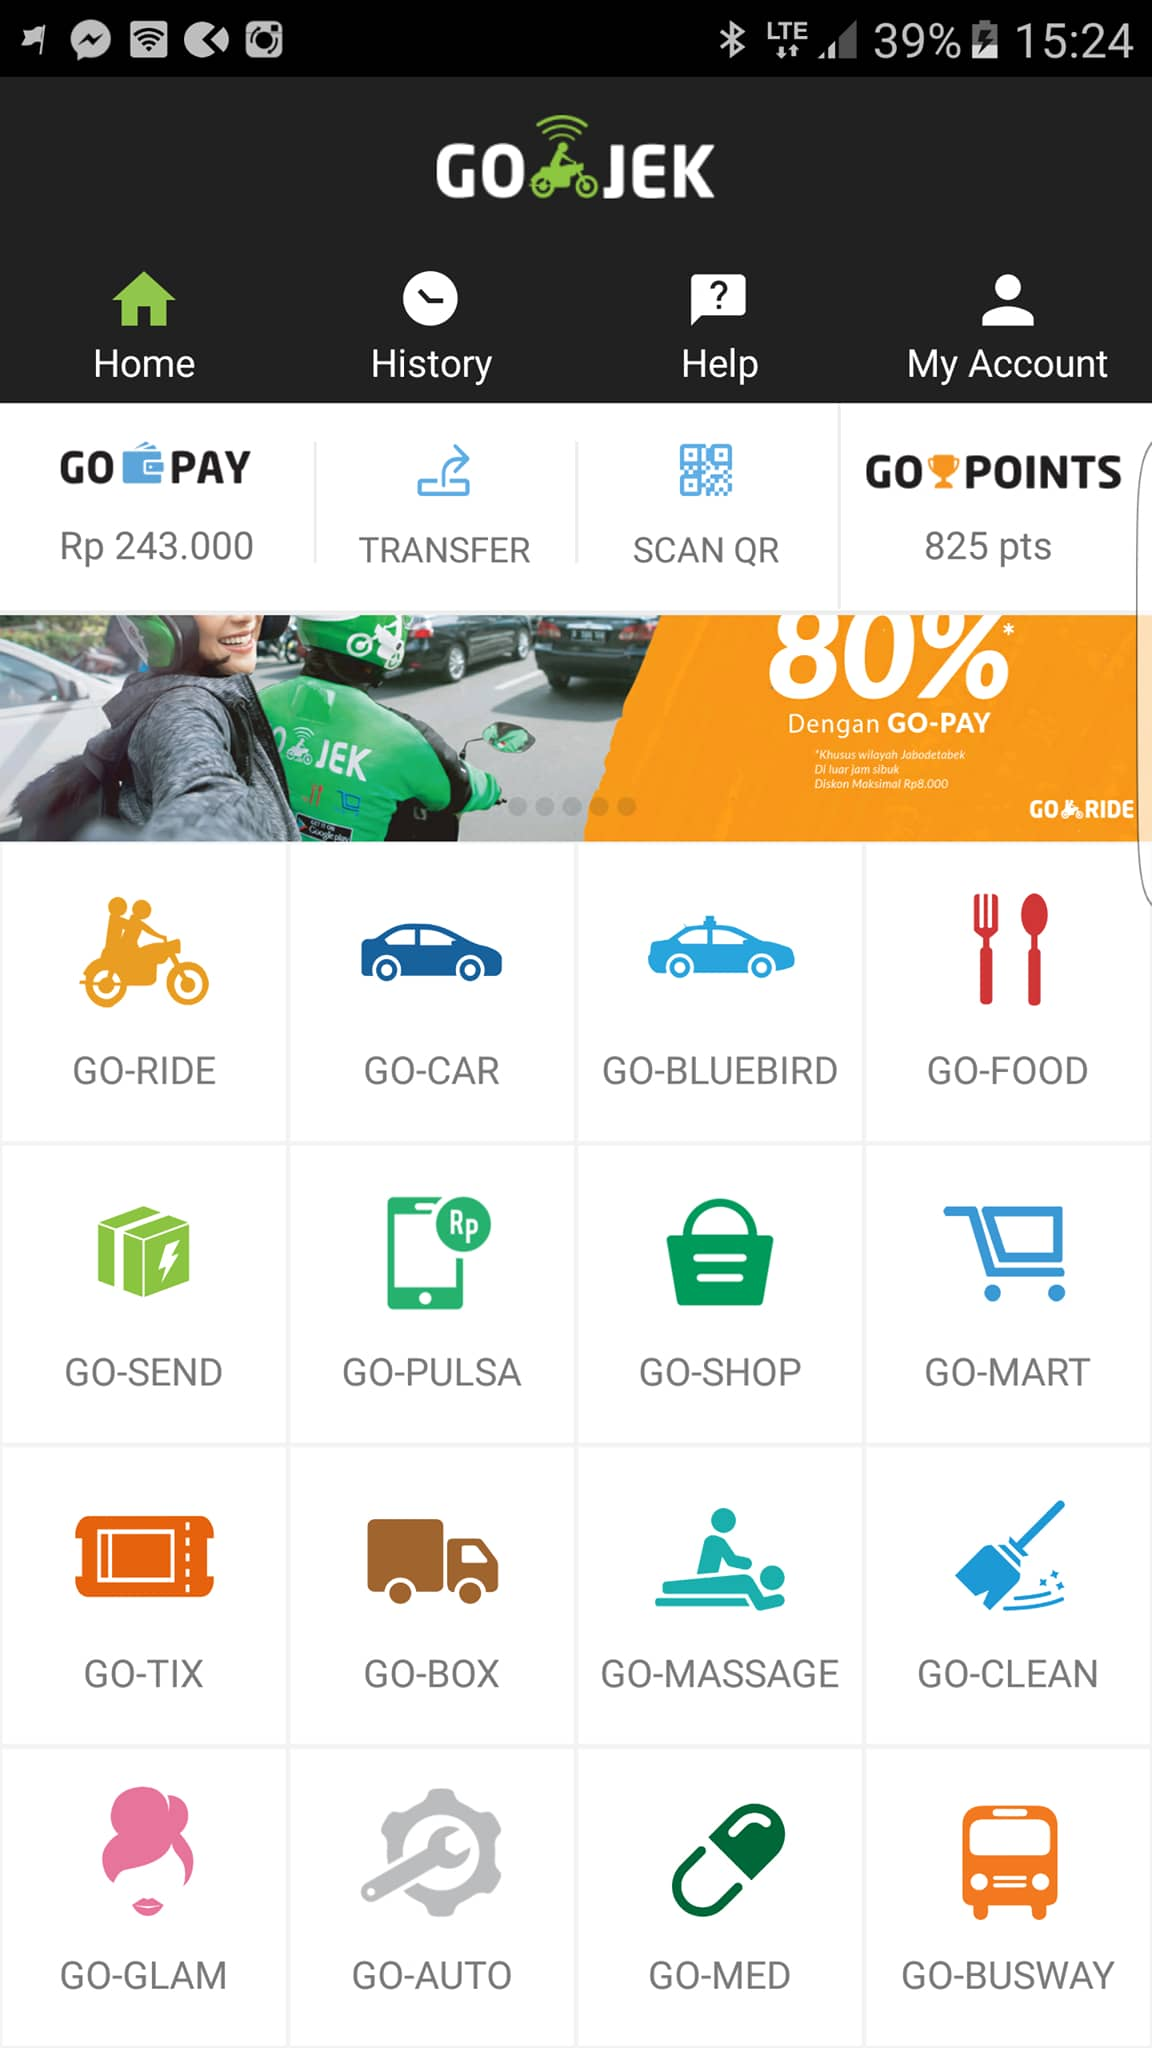 Go-JEK App/Services - Ride Sharing Apps in Indonesia